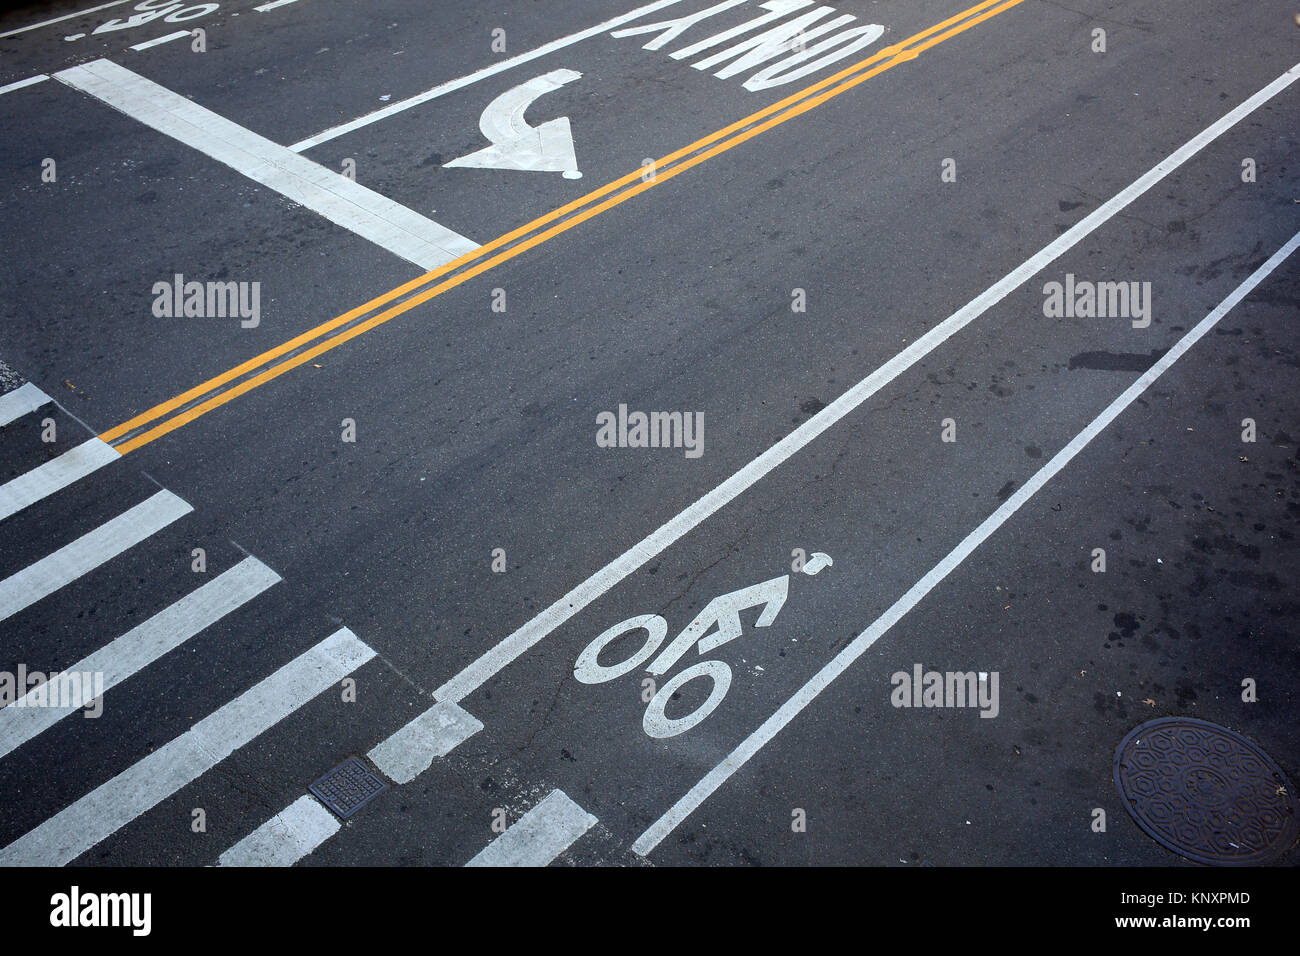 looking down on street traffic markings at New York City intersection - Stock Image